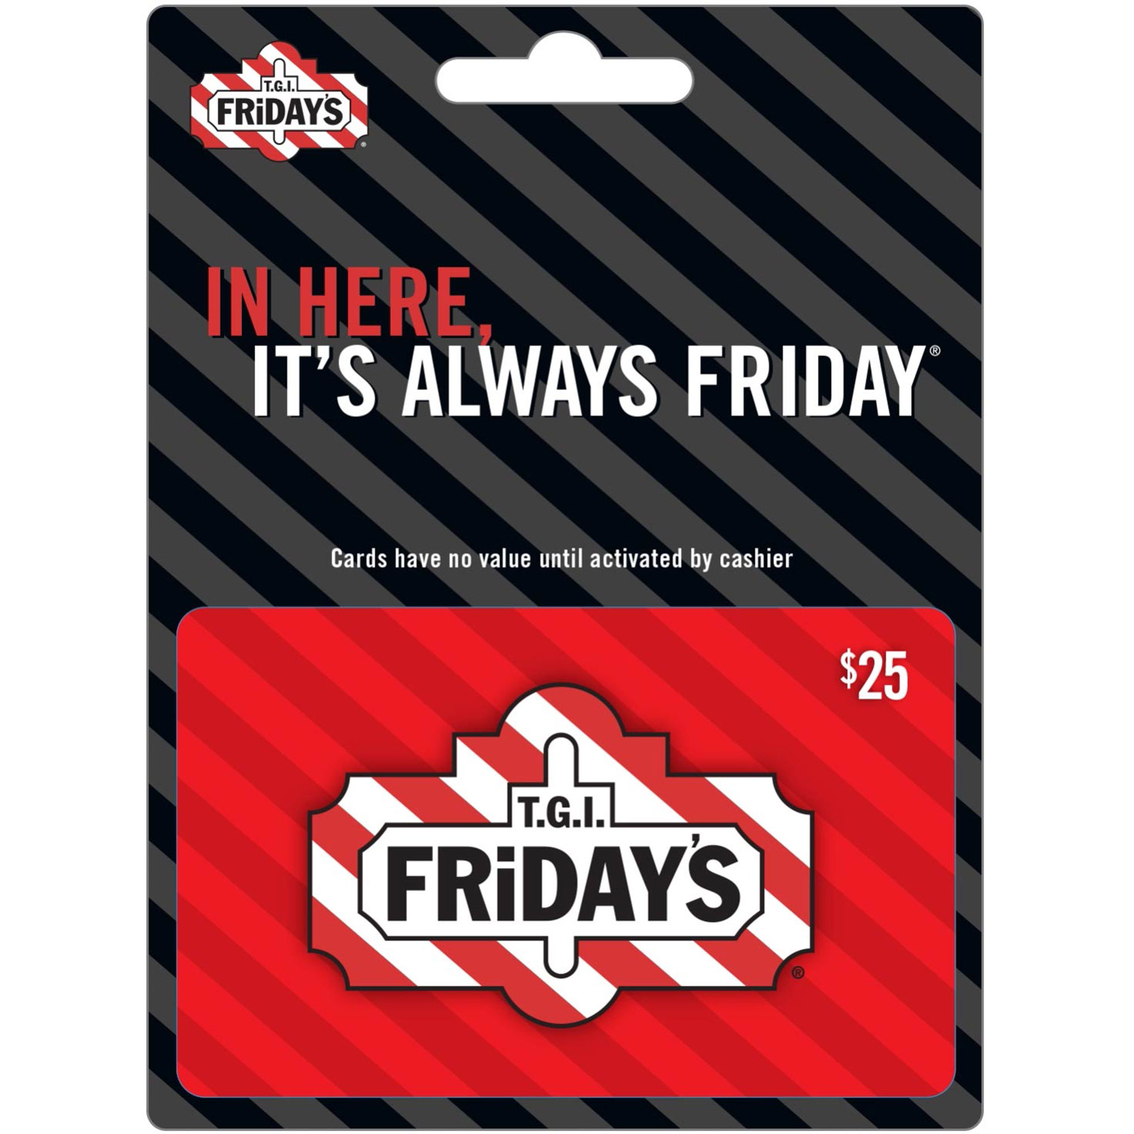 Tgi Fridays Gift Card | Entertainment & Dining | Gifts & Food ...